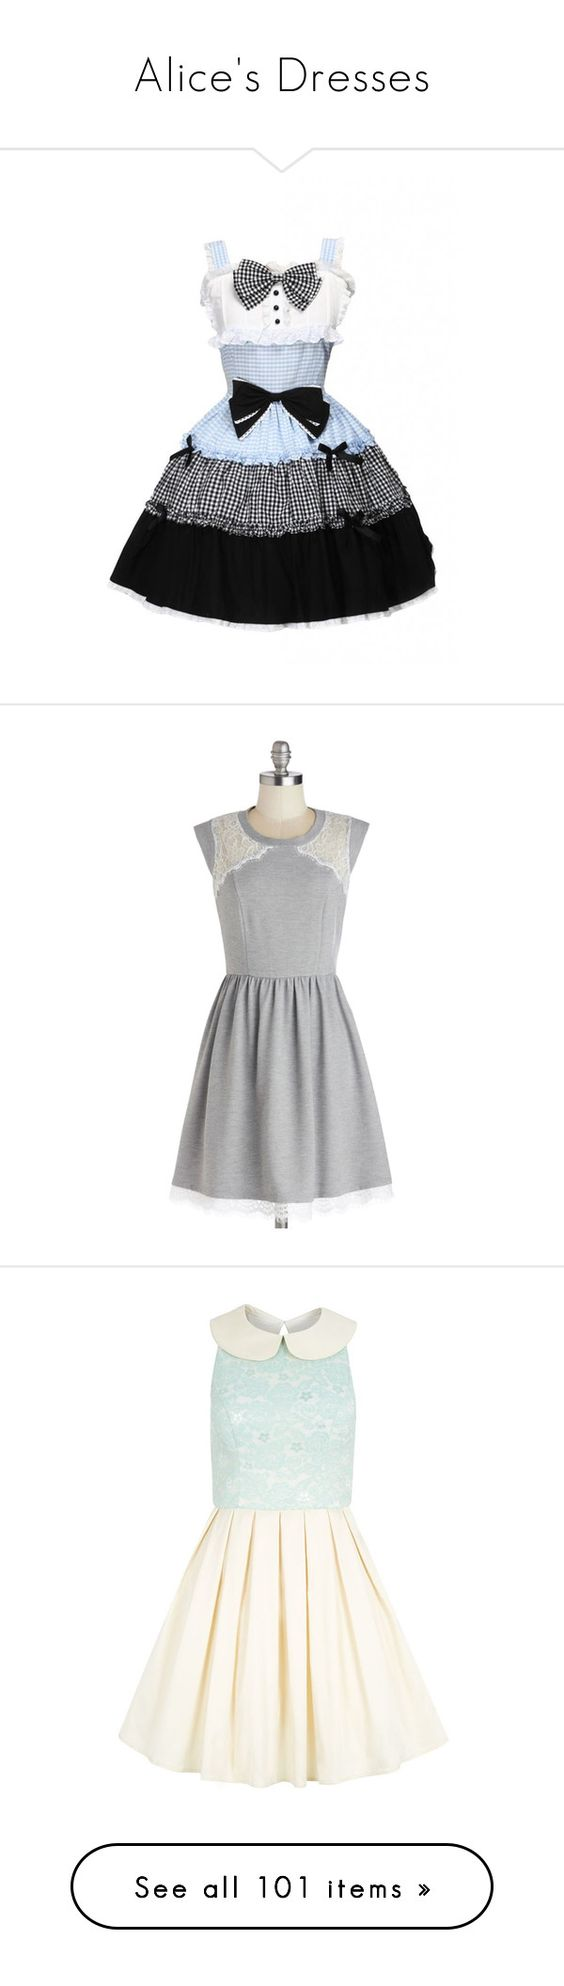 """""""Alice's Dresses"""" by disneydressing ❤ liked on Polyvore featuring dresses, lolita, modcloth, grey, apparel, fashion dress, multi color dress, mid length dresses, lace dress and grey dress"""